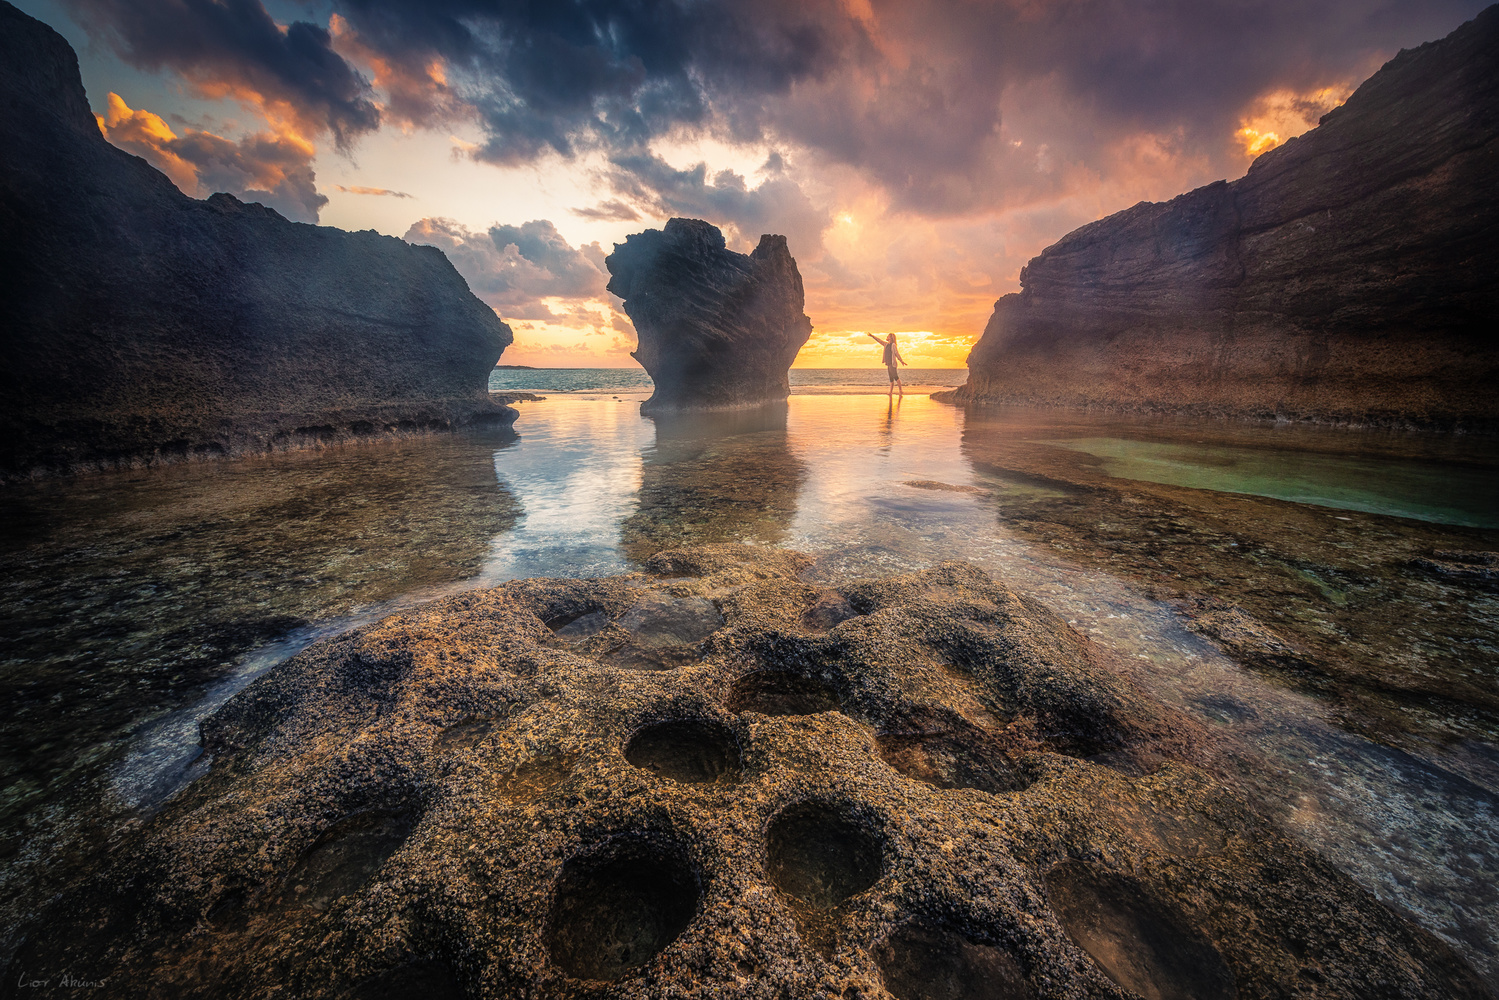 Fist of the First Men by Lior Akunis